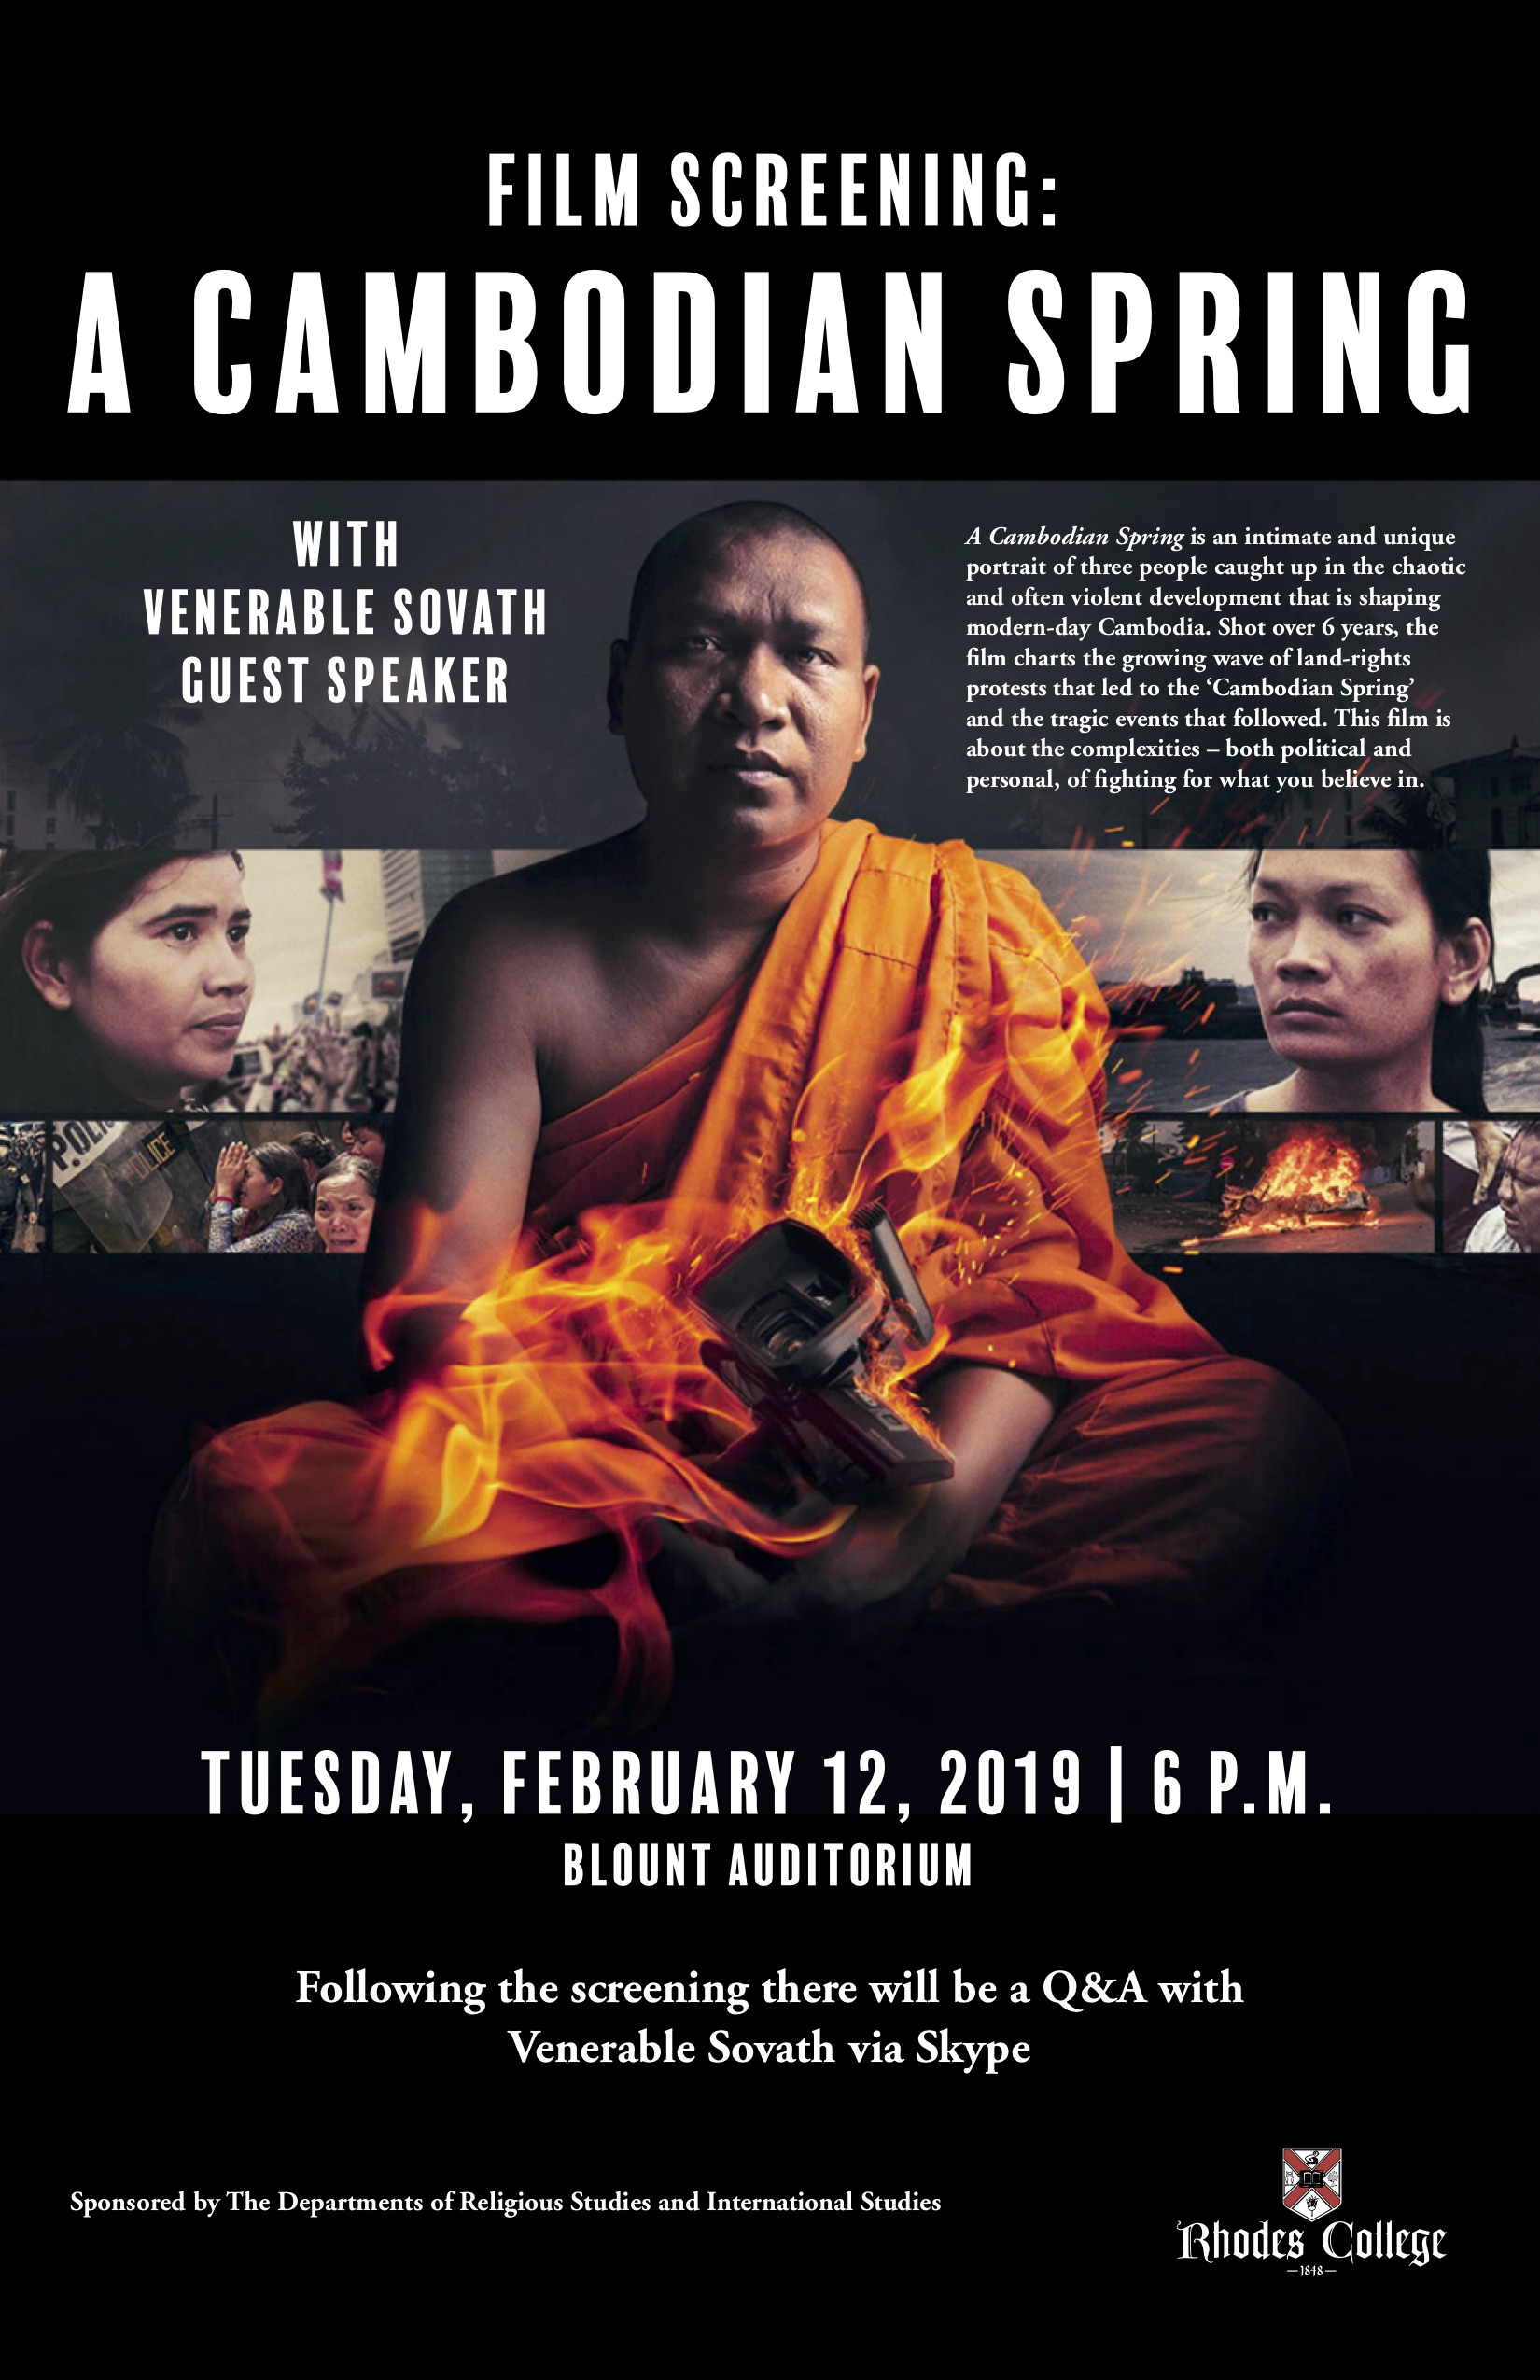 Poster with a photo of a Buddhist monk dressed in orange with flames emanating front a camera he is holding reads, Film Screening: Cambodian Spring